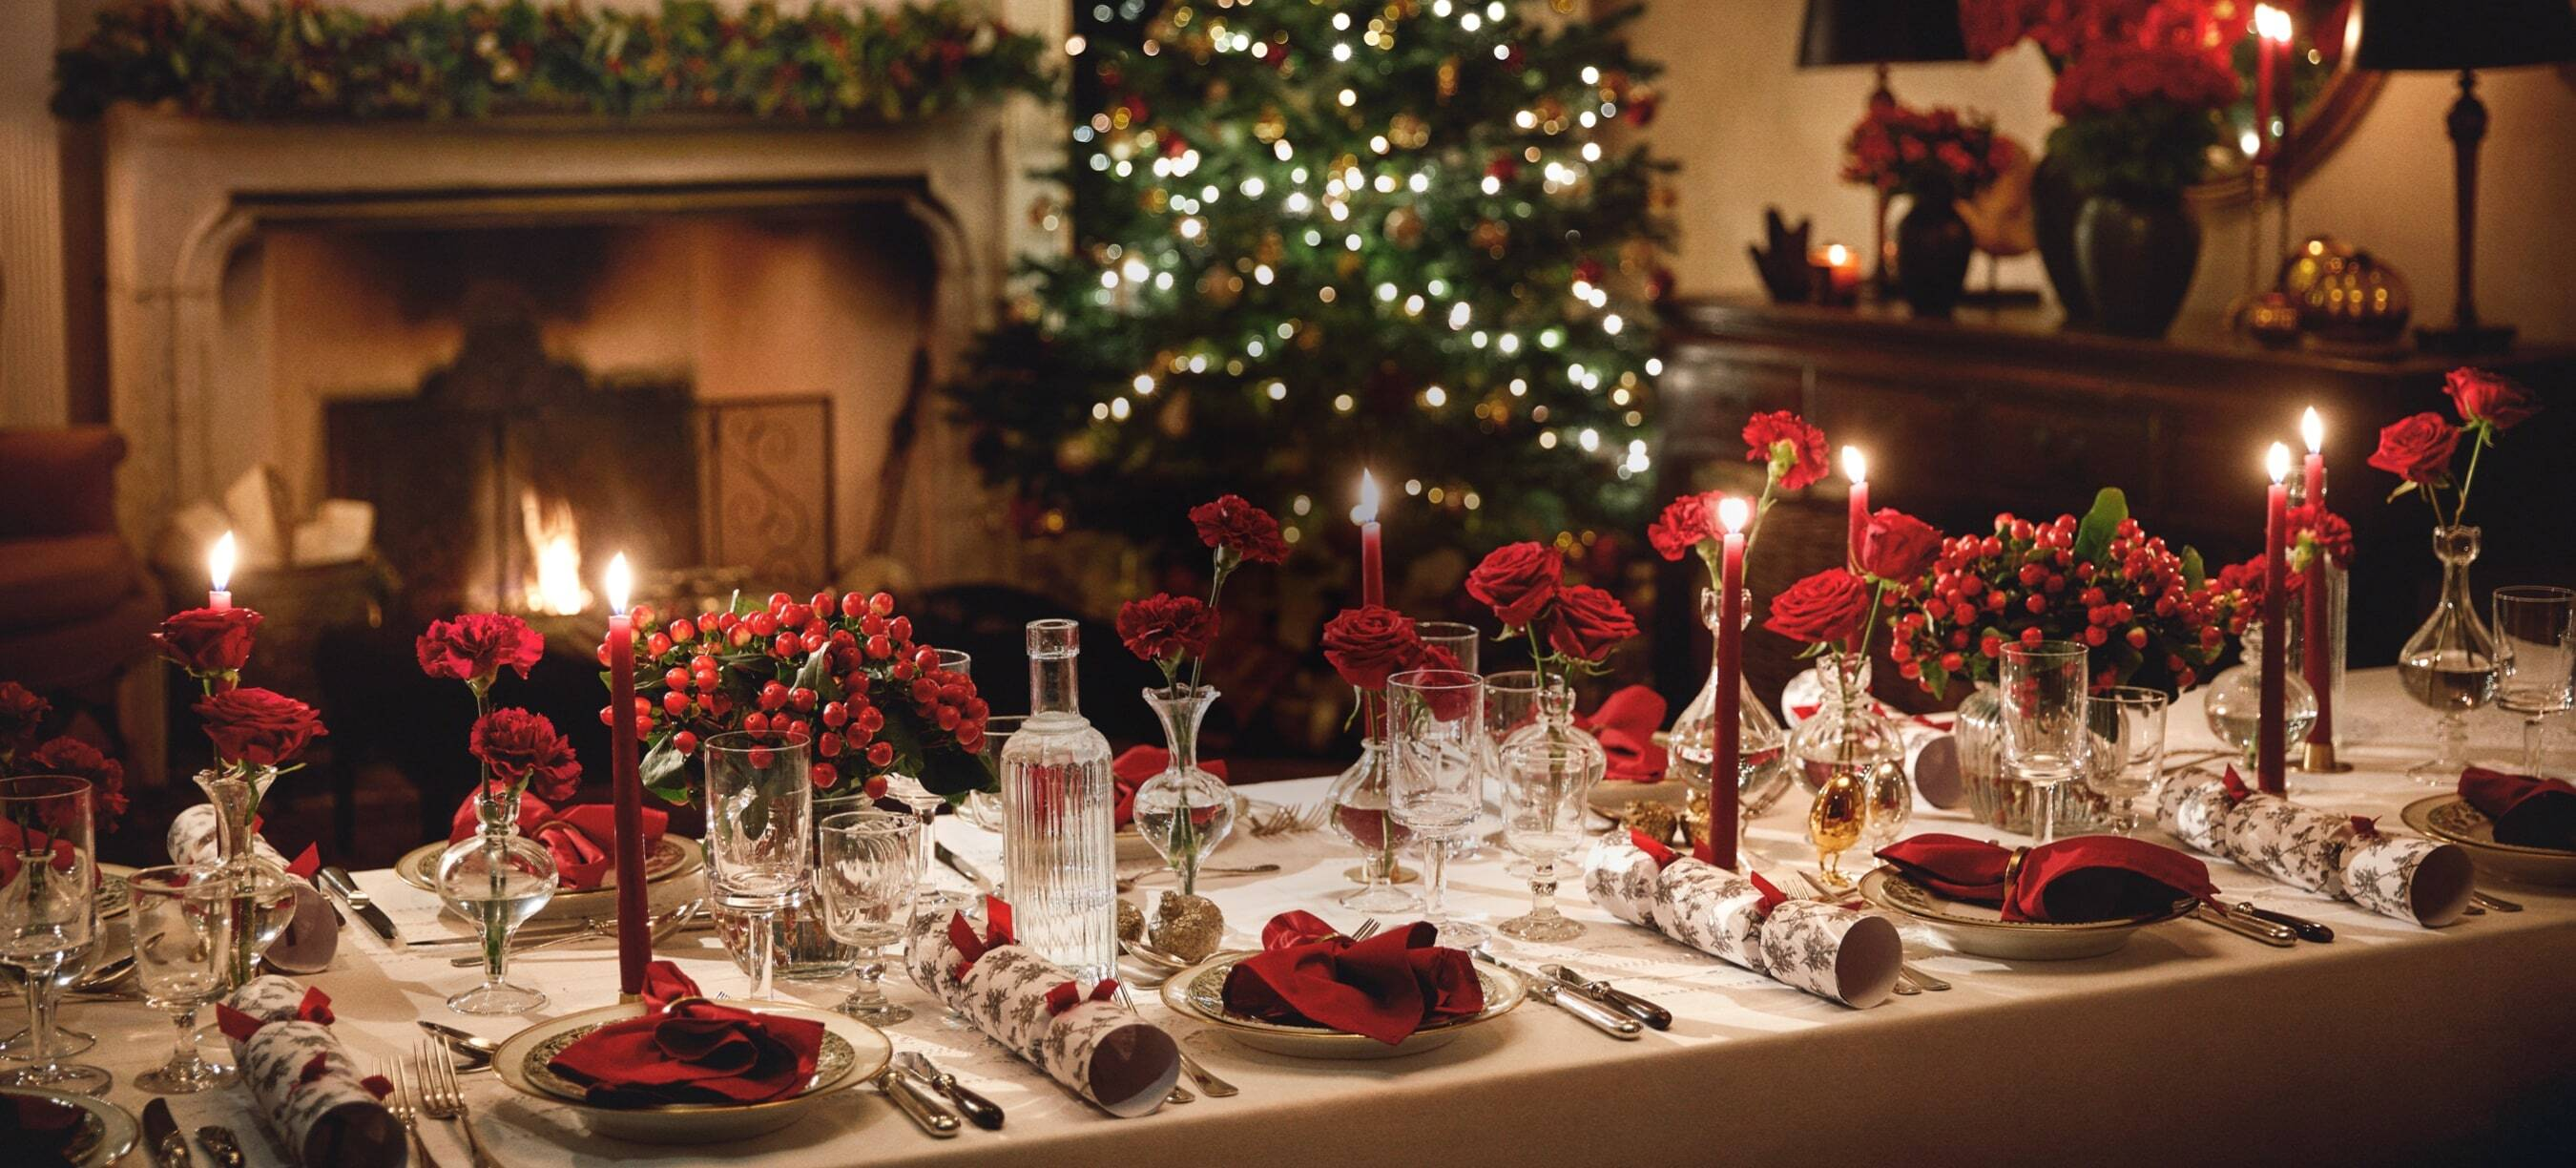 Holiday Table Sets